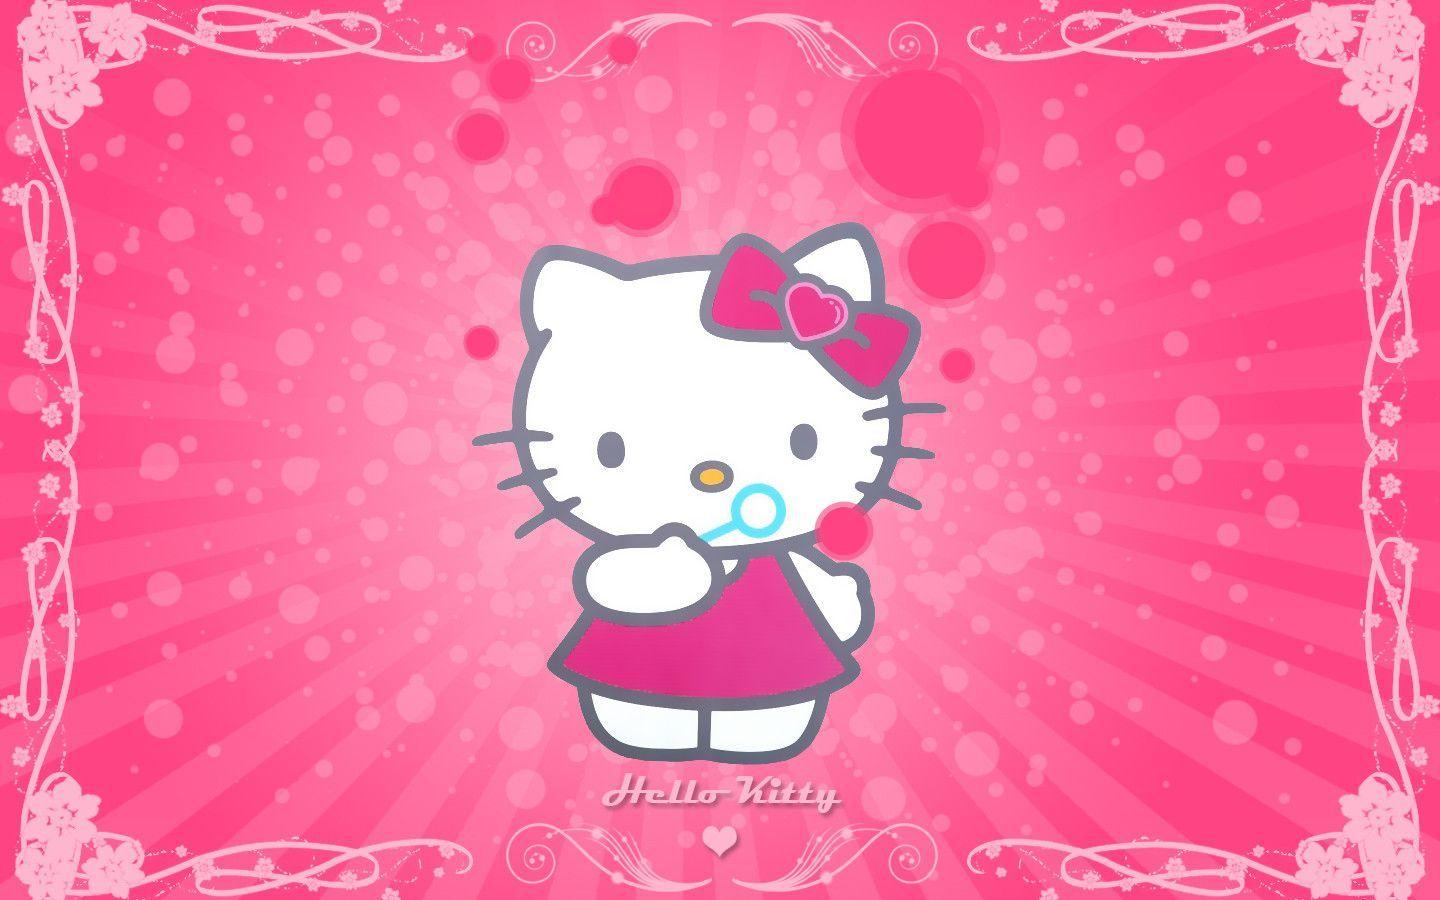 Amazing Wallpaper Hello Kitty Blackberry - 8xR0Khy  You Should Have_74576.jpg